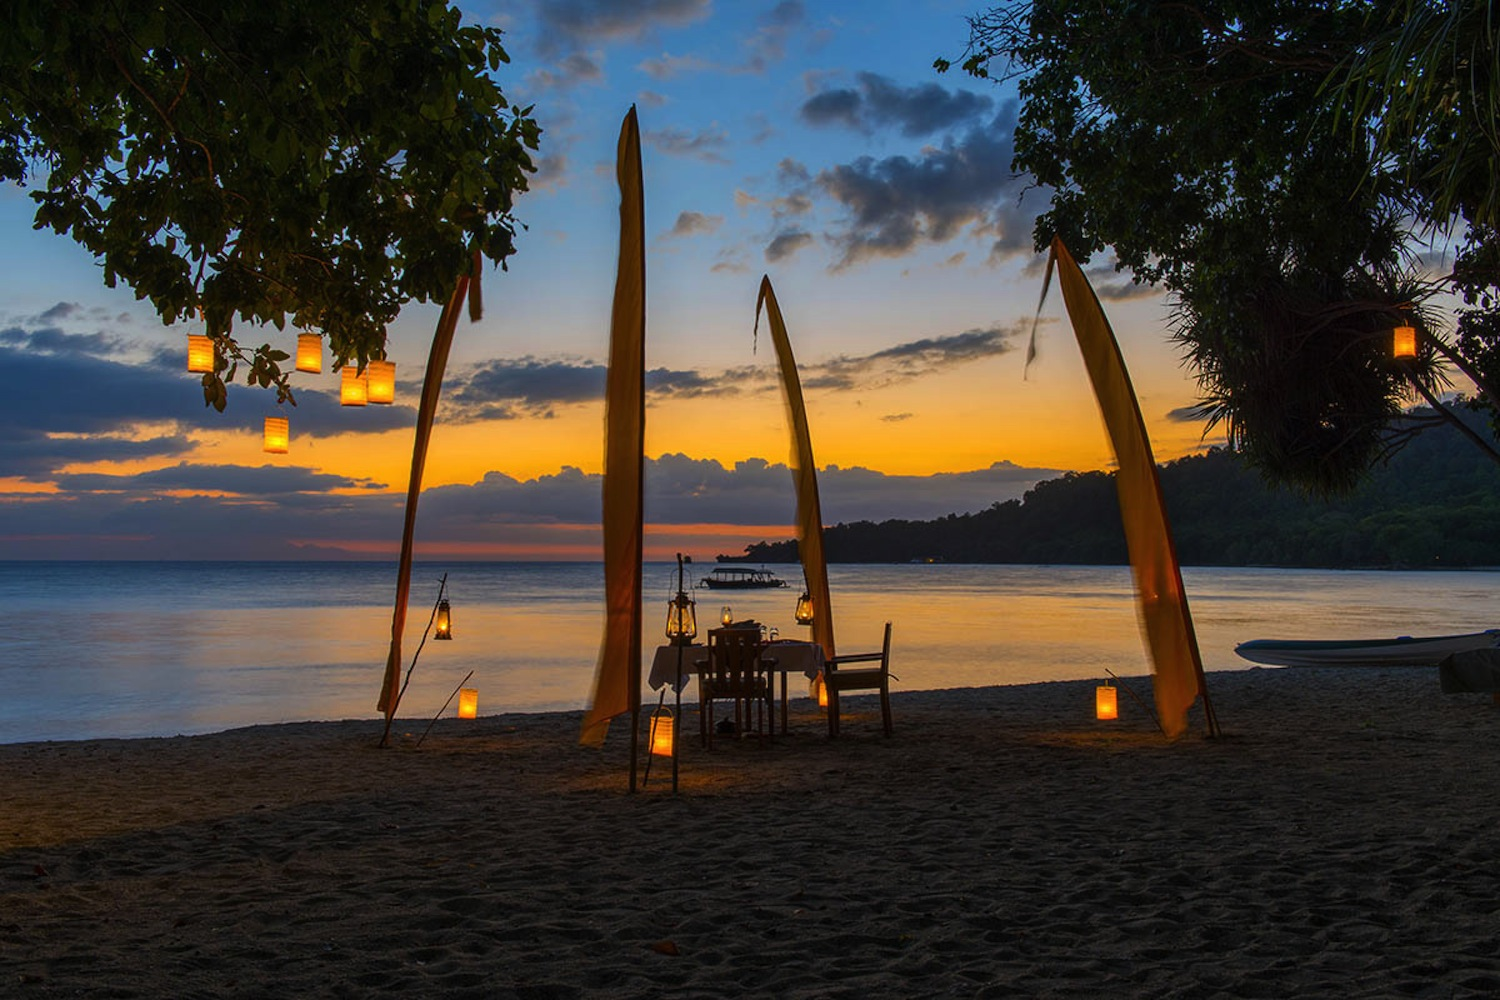 Stunning beach view at the Amanwana during sunset.